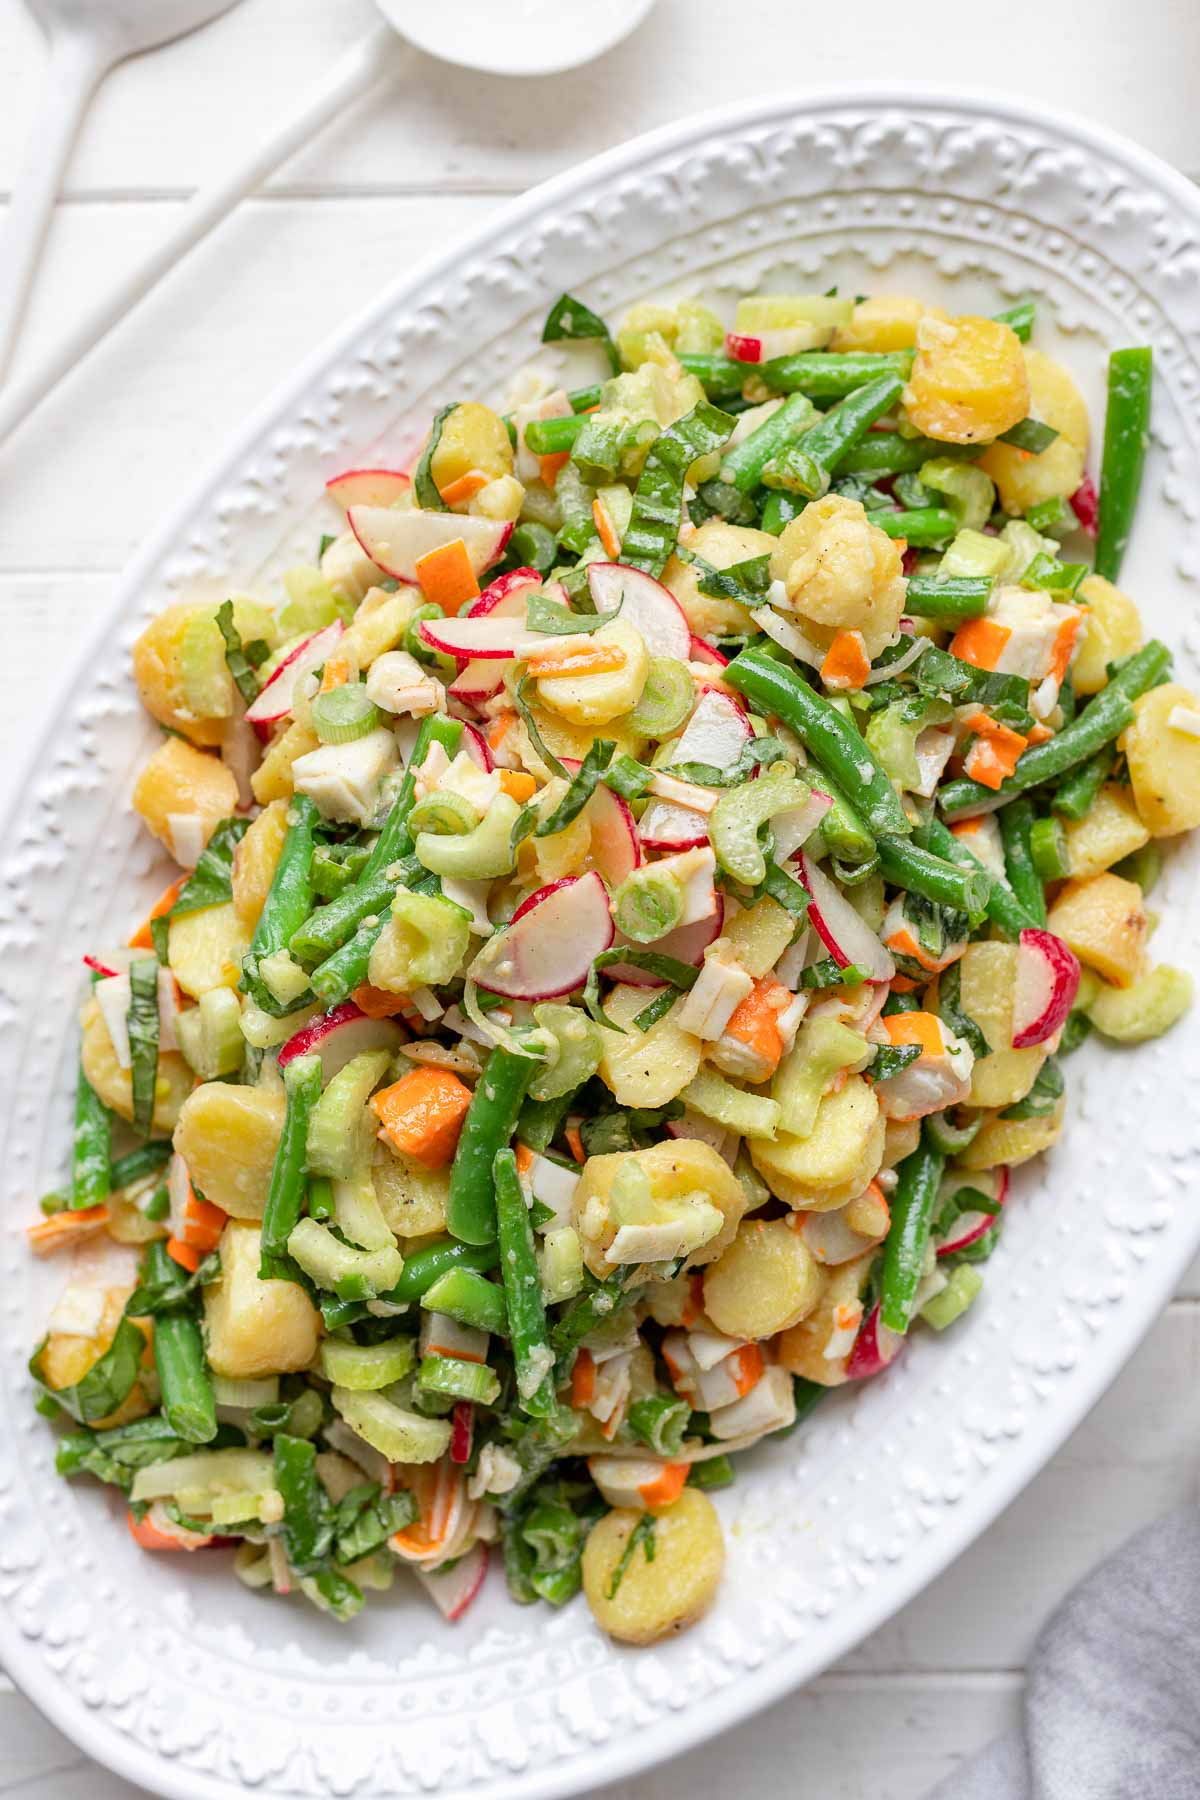 Potato Salad with Surimi Imitation Crab, green beans, radishes and celery